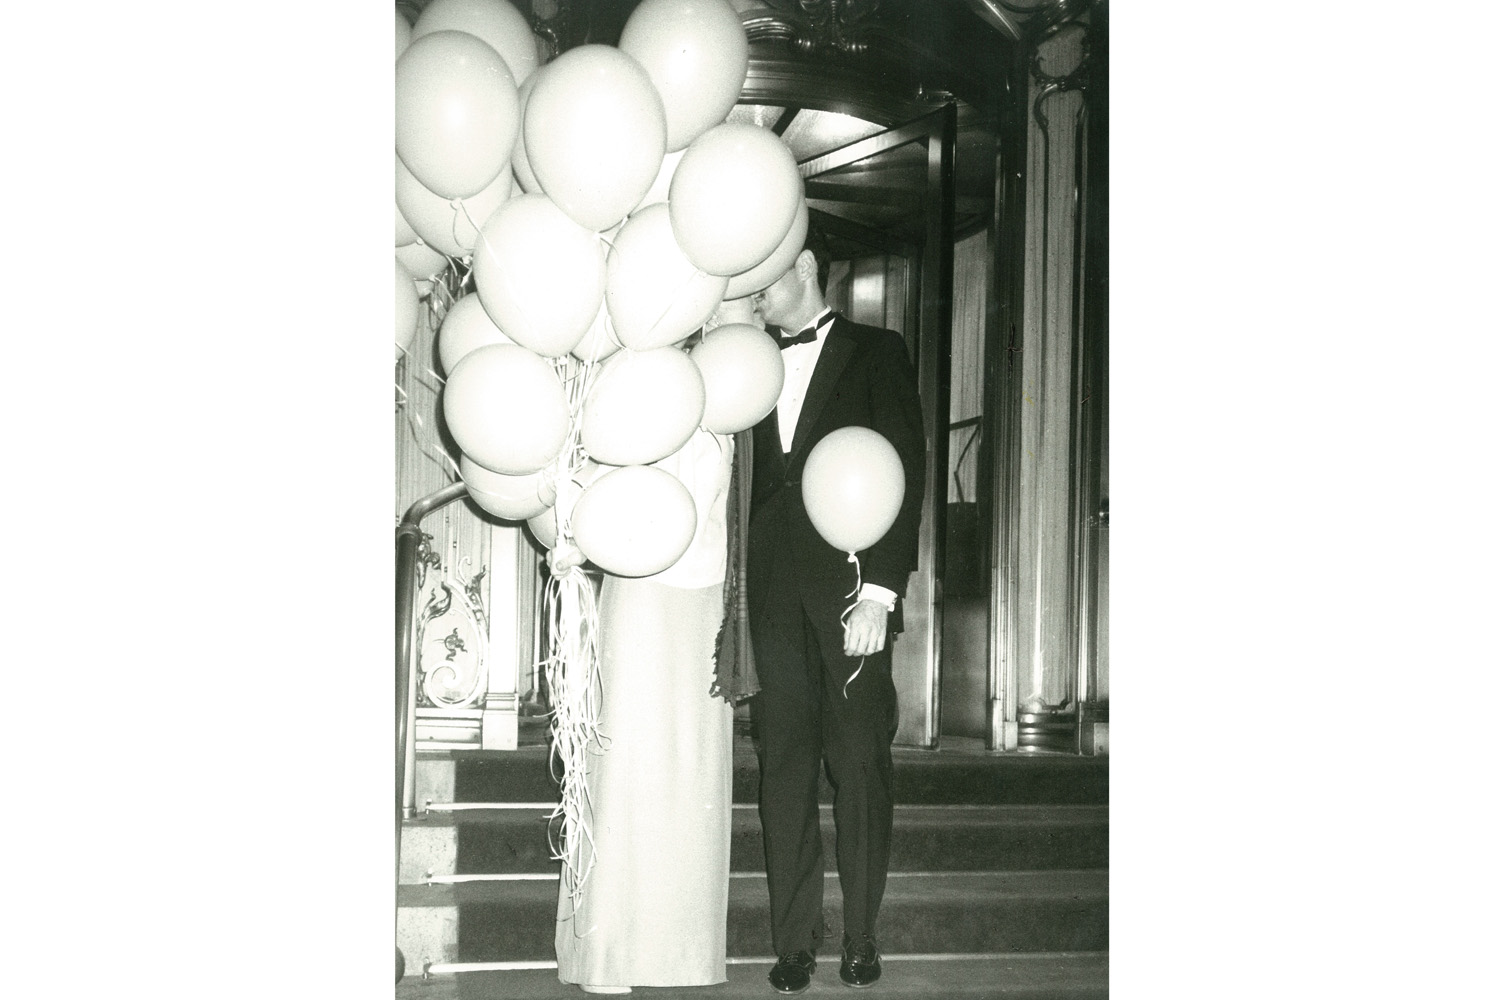 Couple with Balloons, Plaza Hotel, New York City